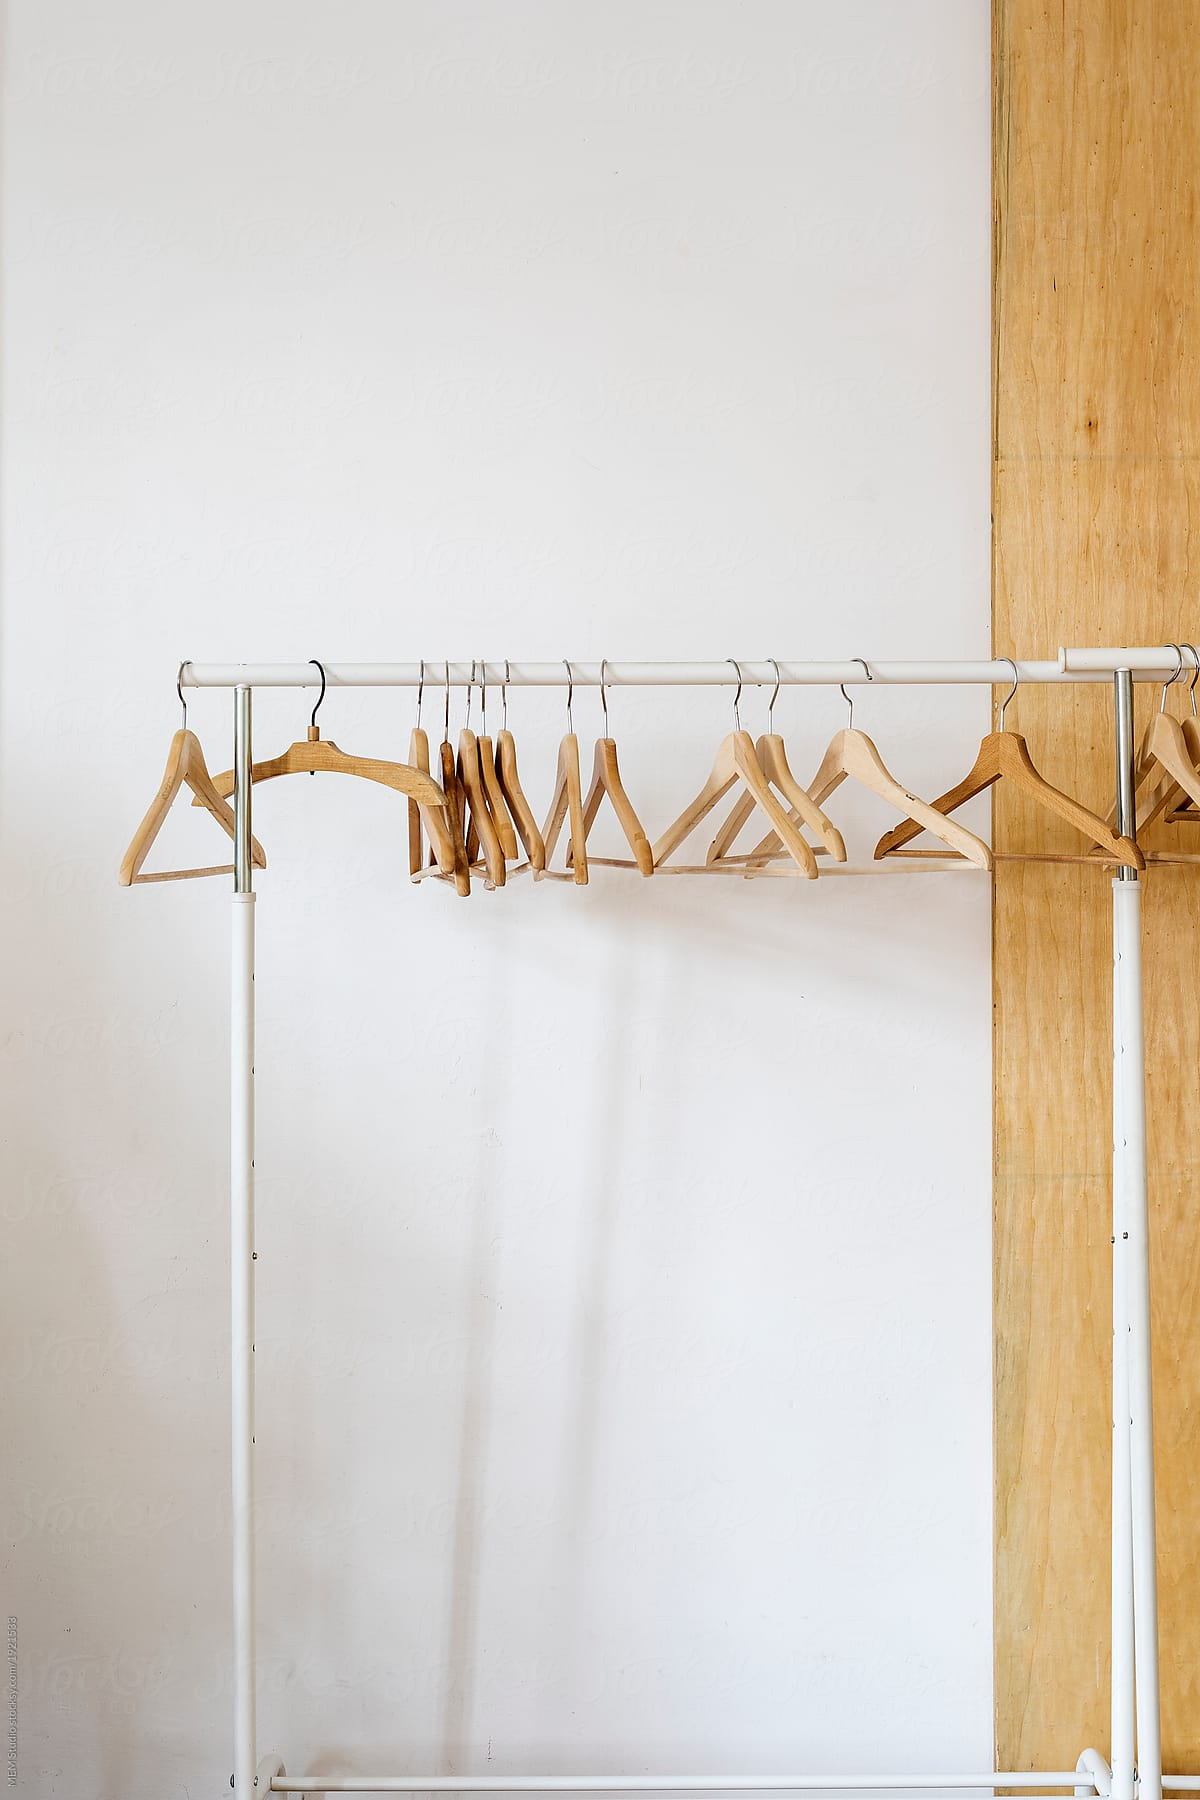 empty wooden clothes hangers on a clothes rack by mem studio for stocksy united